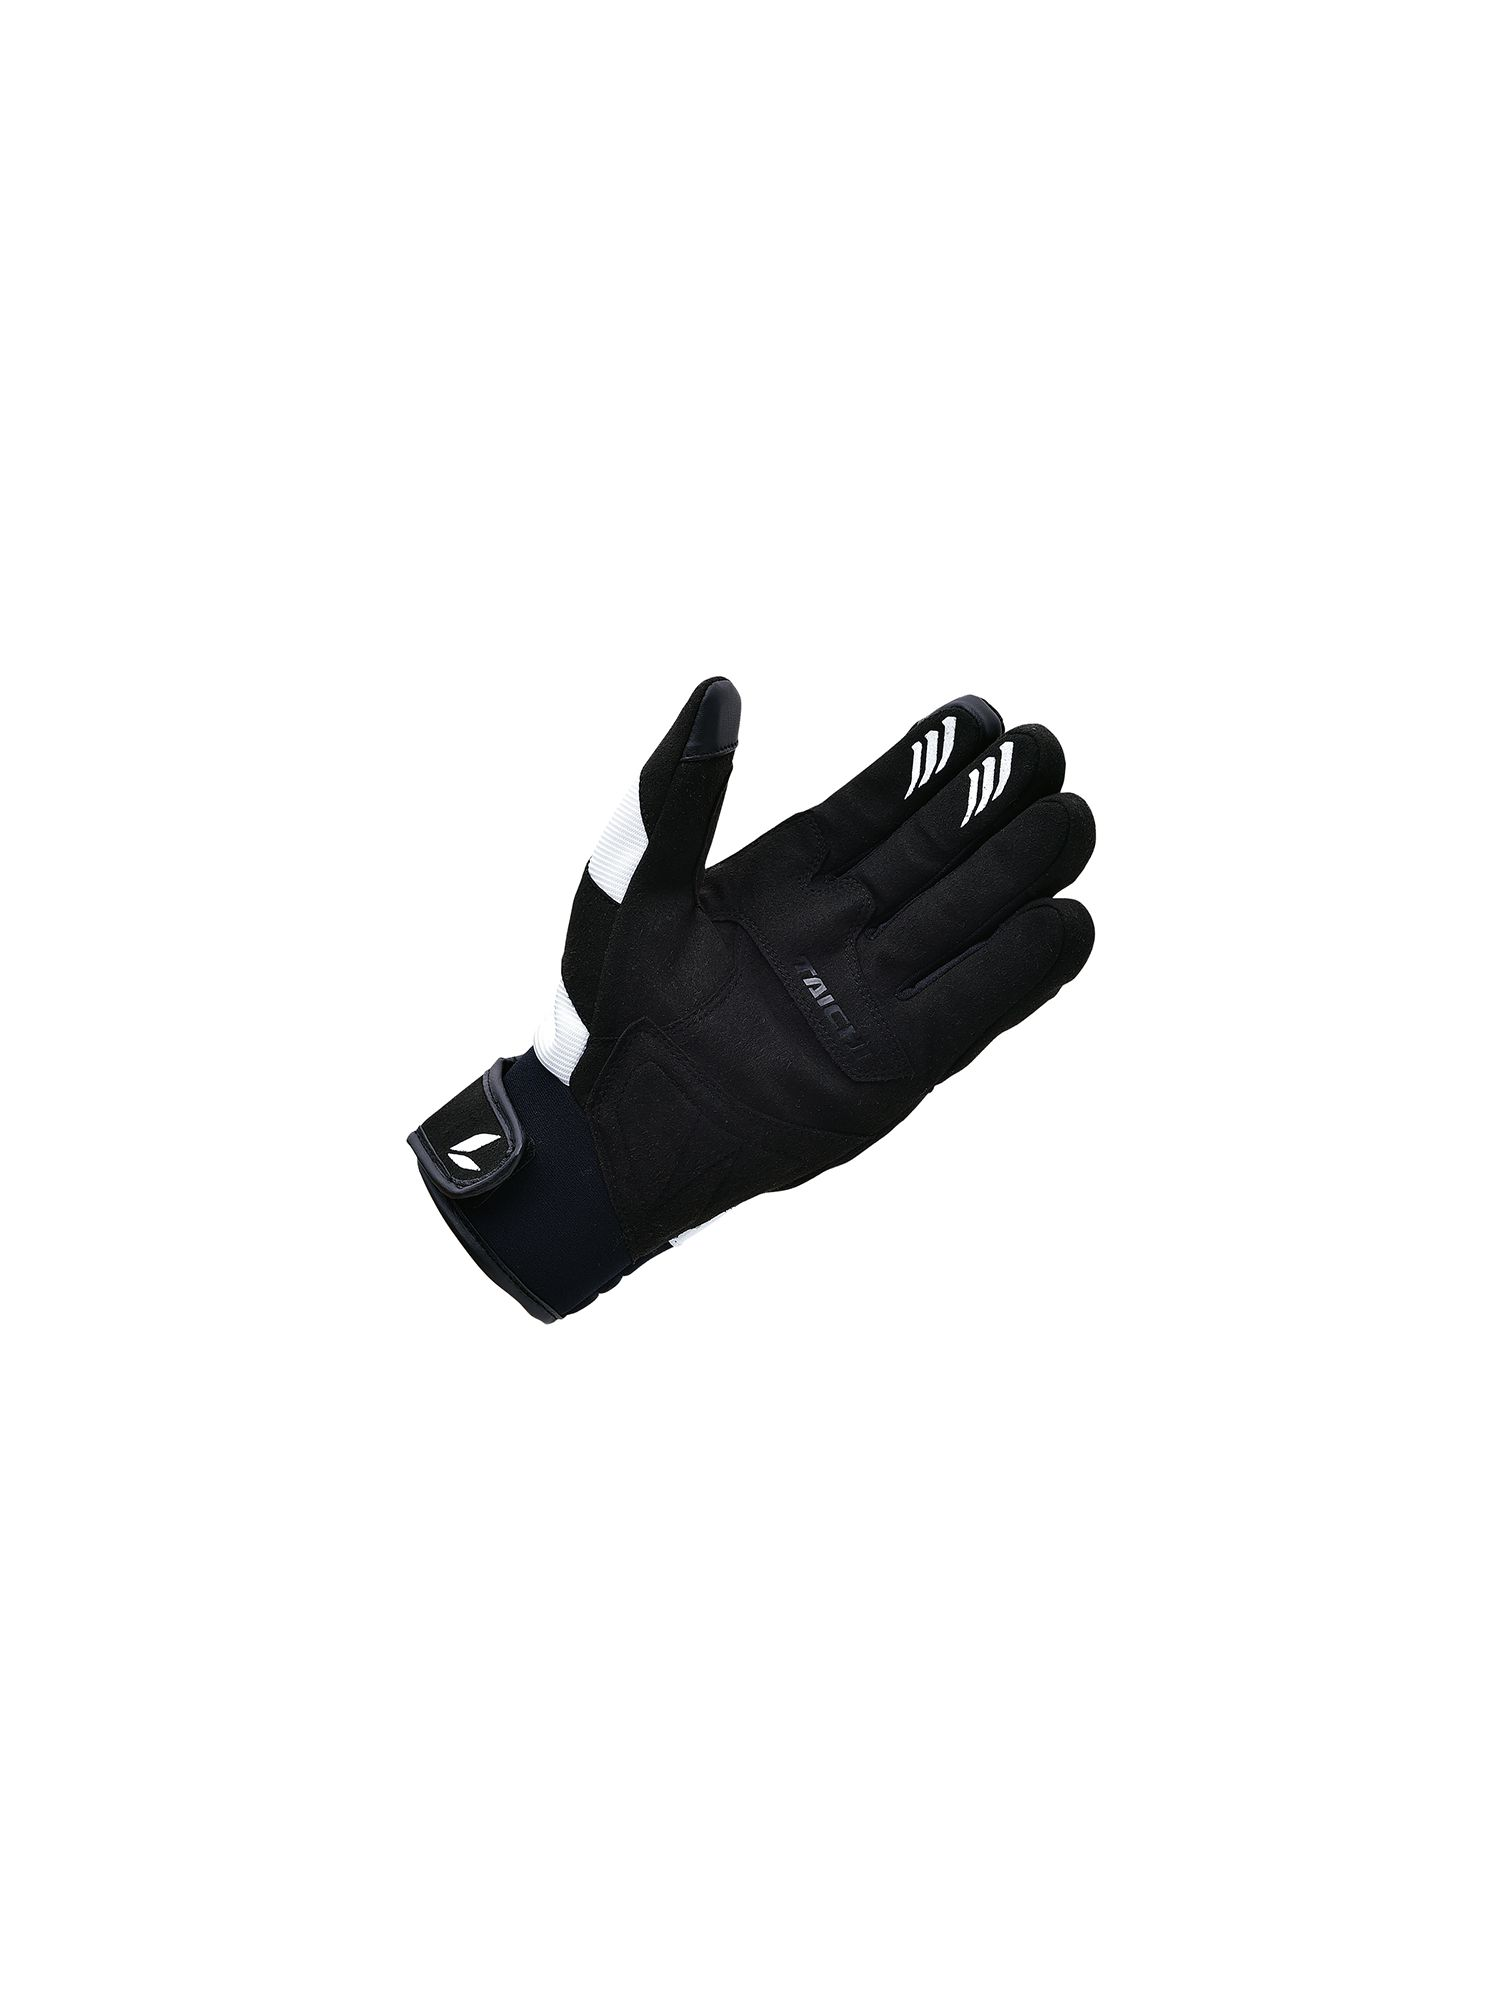 RST608 | STEALTH WINTER GLOVE[5colors]